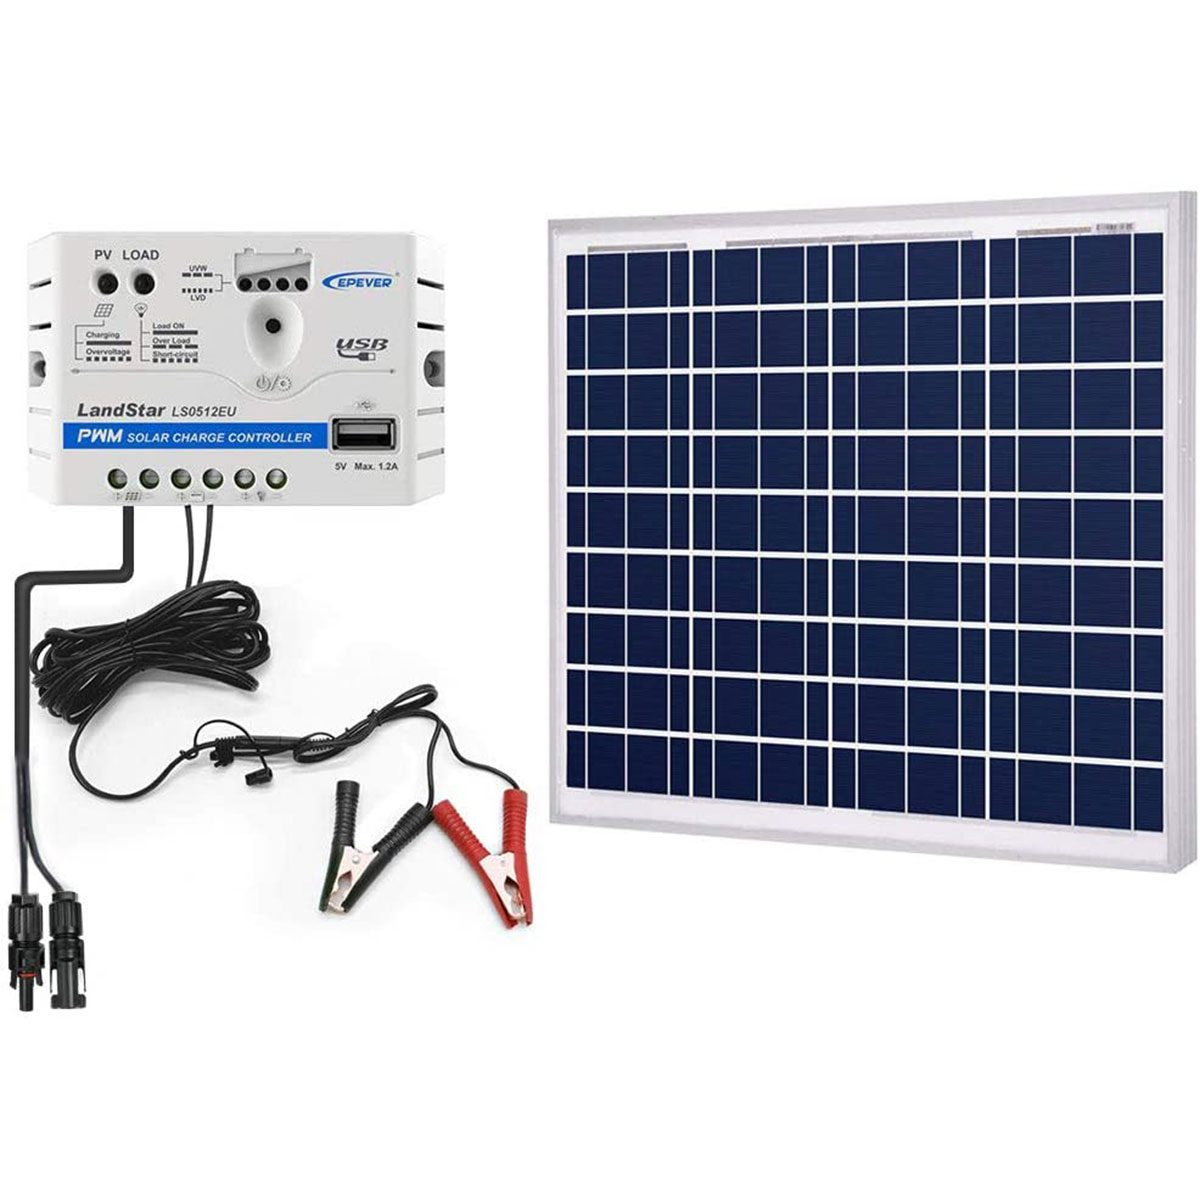 Acopower solar kit